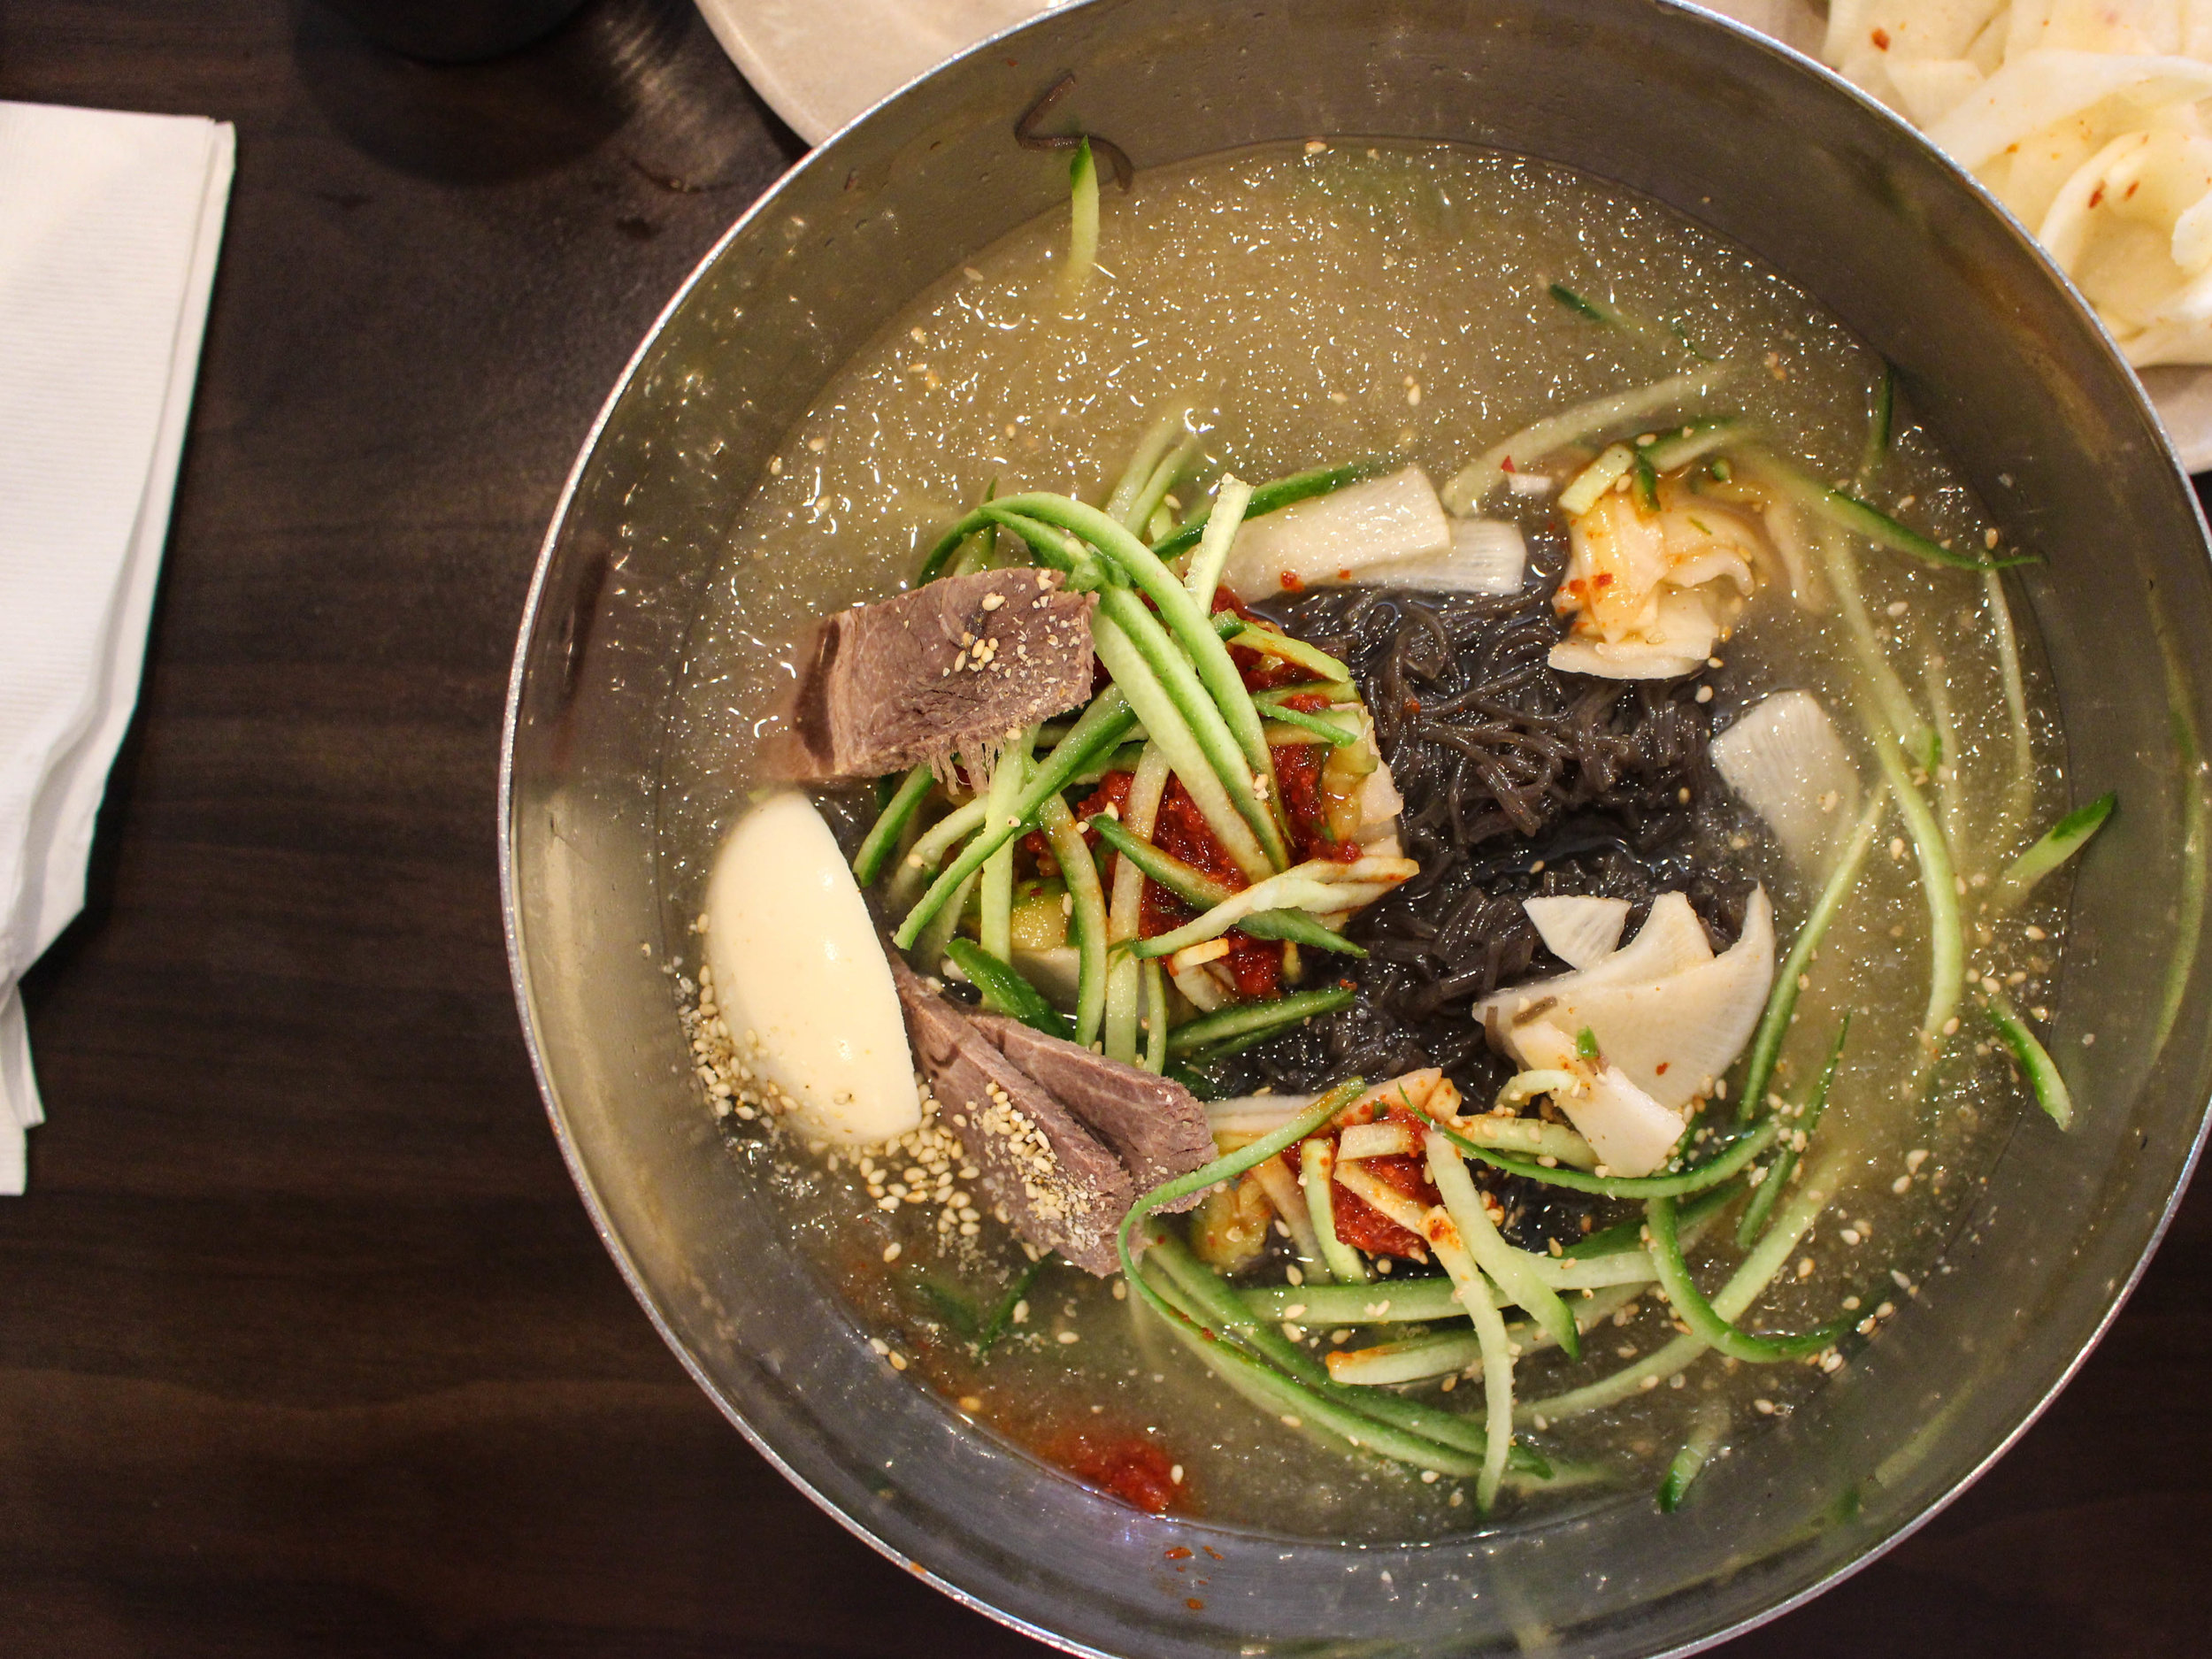 One of my personal must-eat meals in LA: 냉면 (cold arrowroot noodles) at  Yuchun .